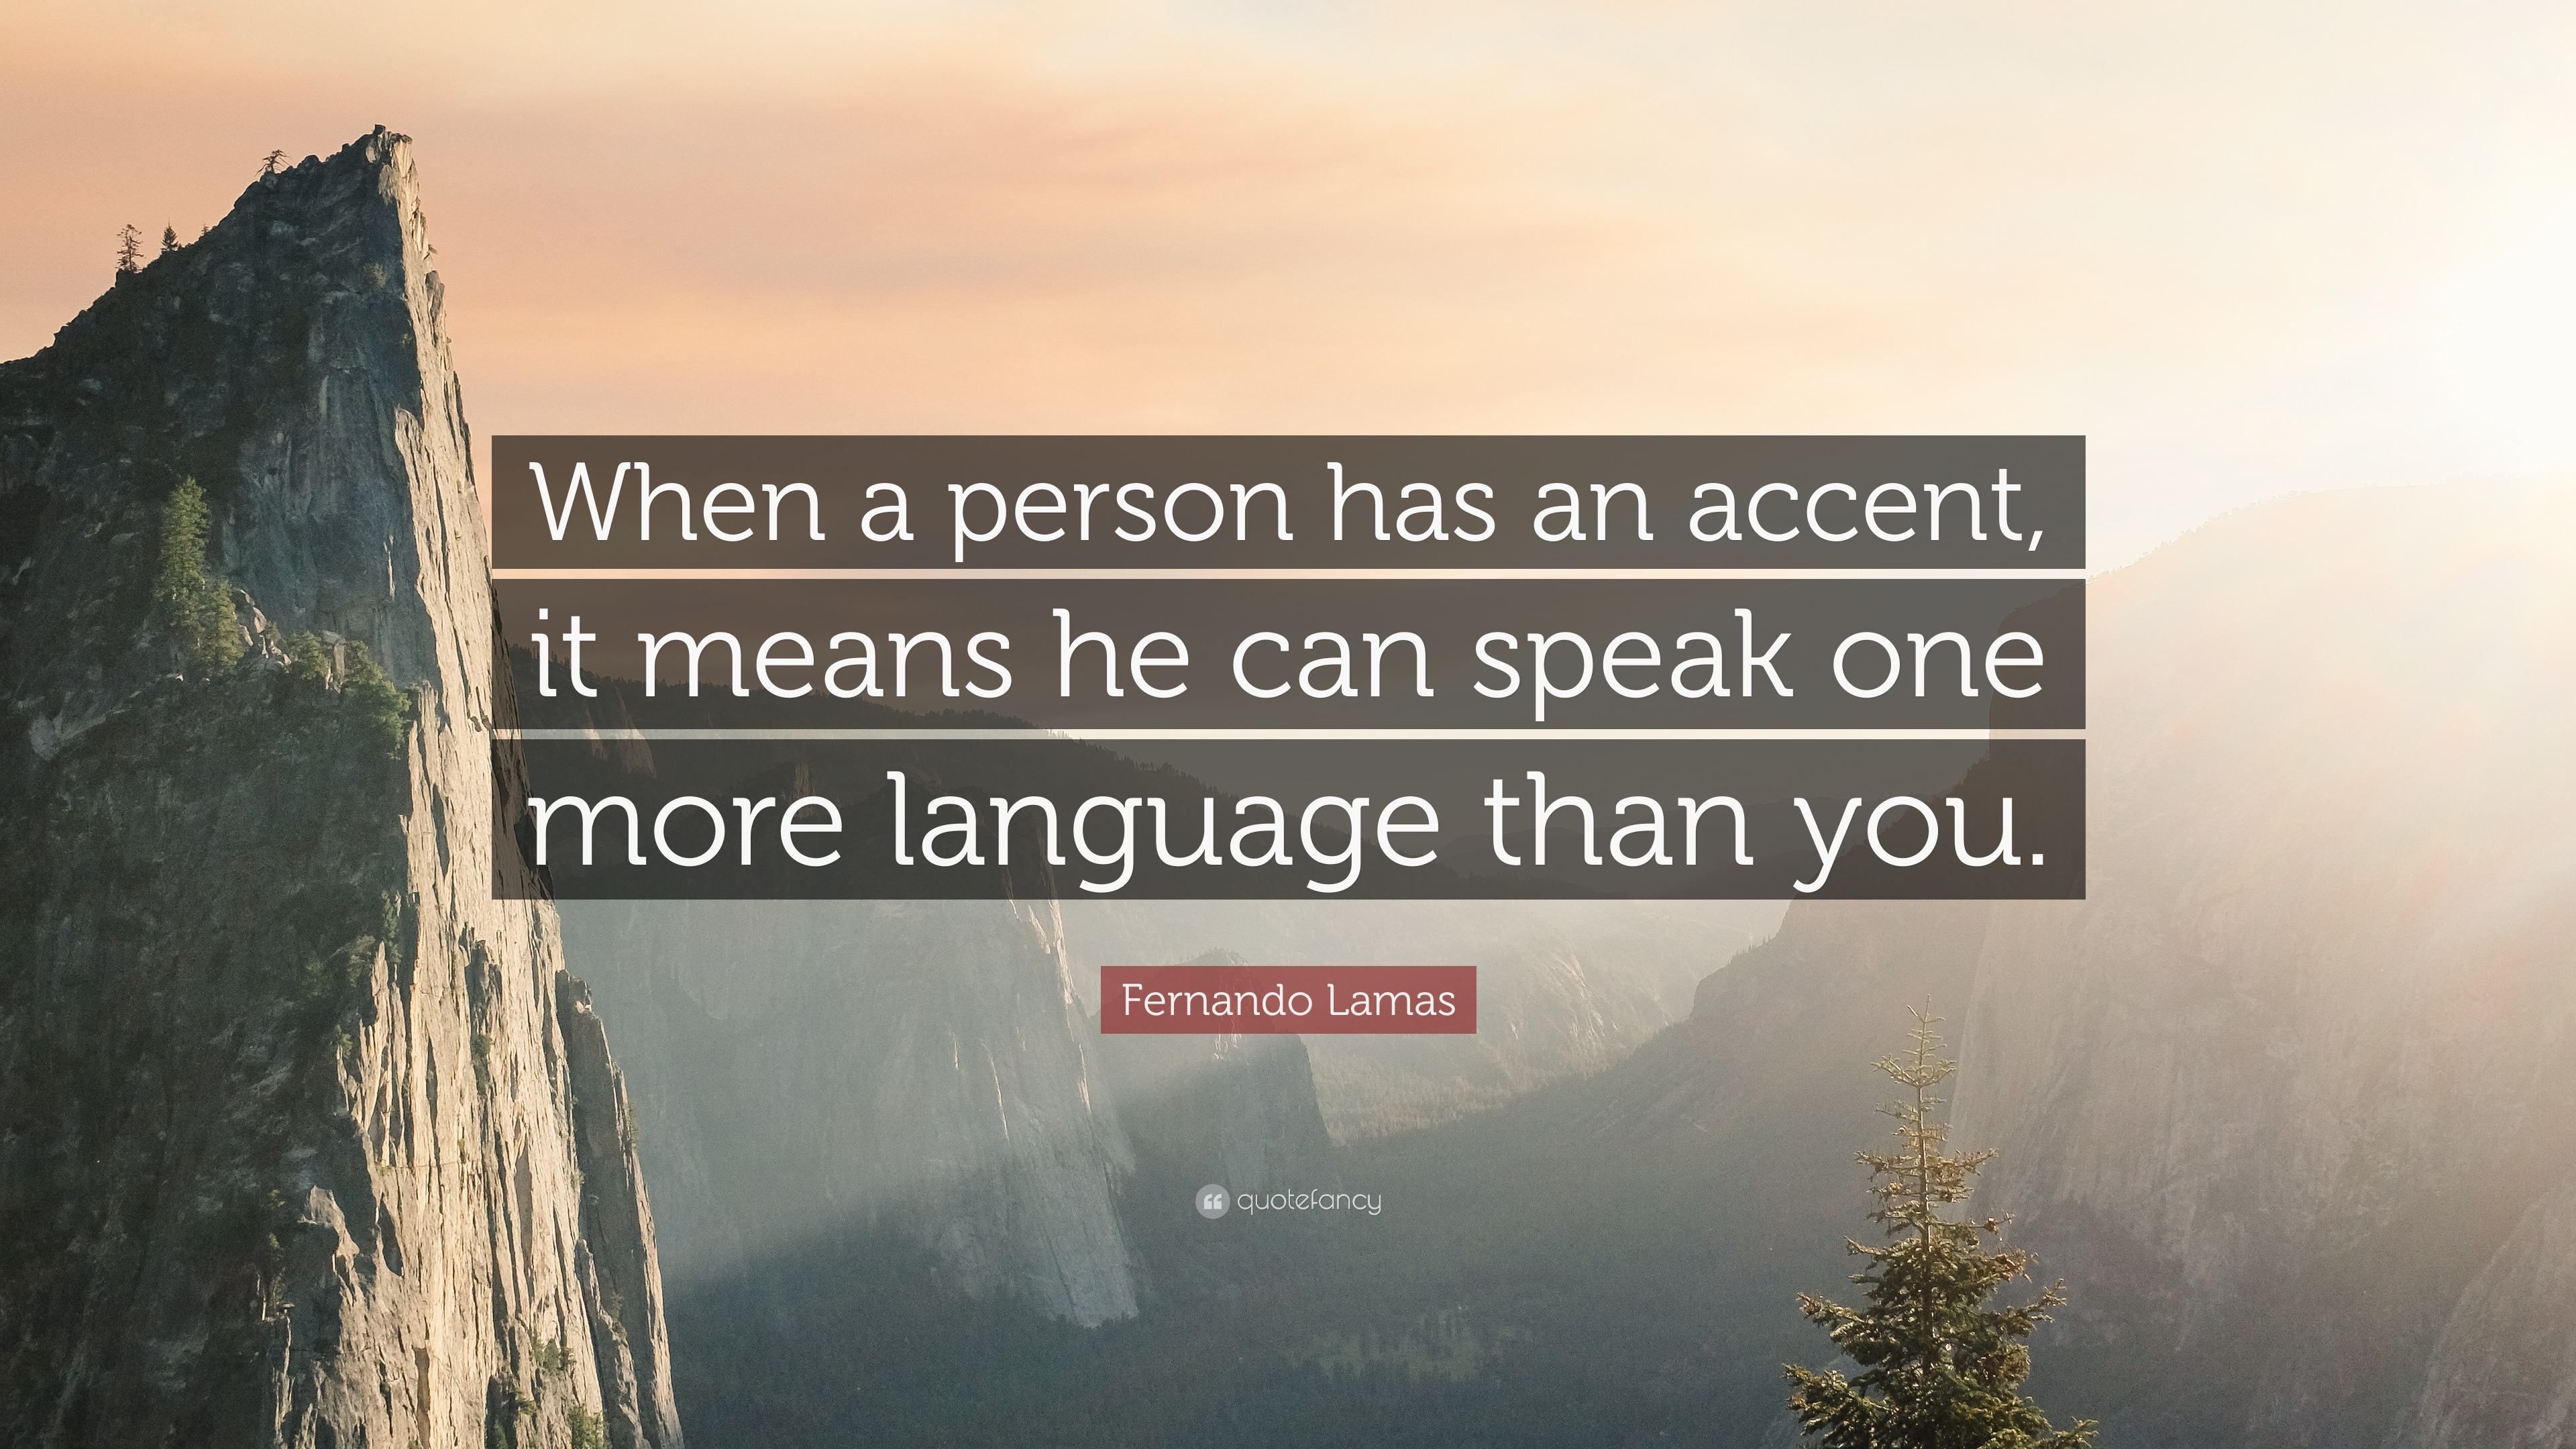 1669379-Fernando-Lamas-Quote-When-a-person-has-an-accent-it-means-he-can.jpg